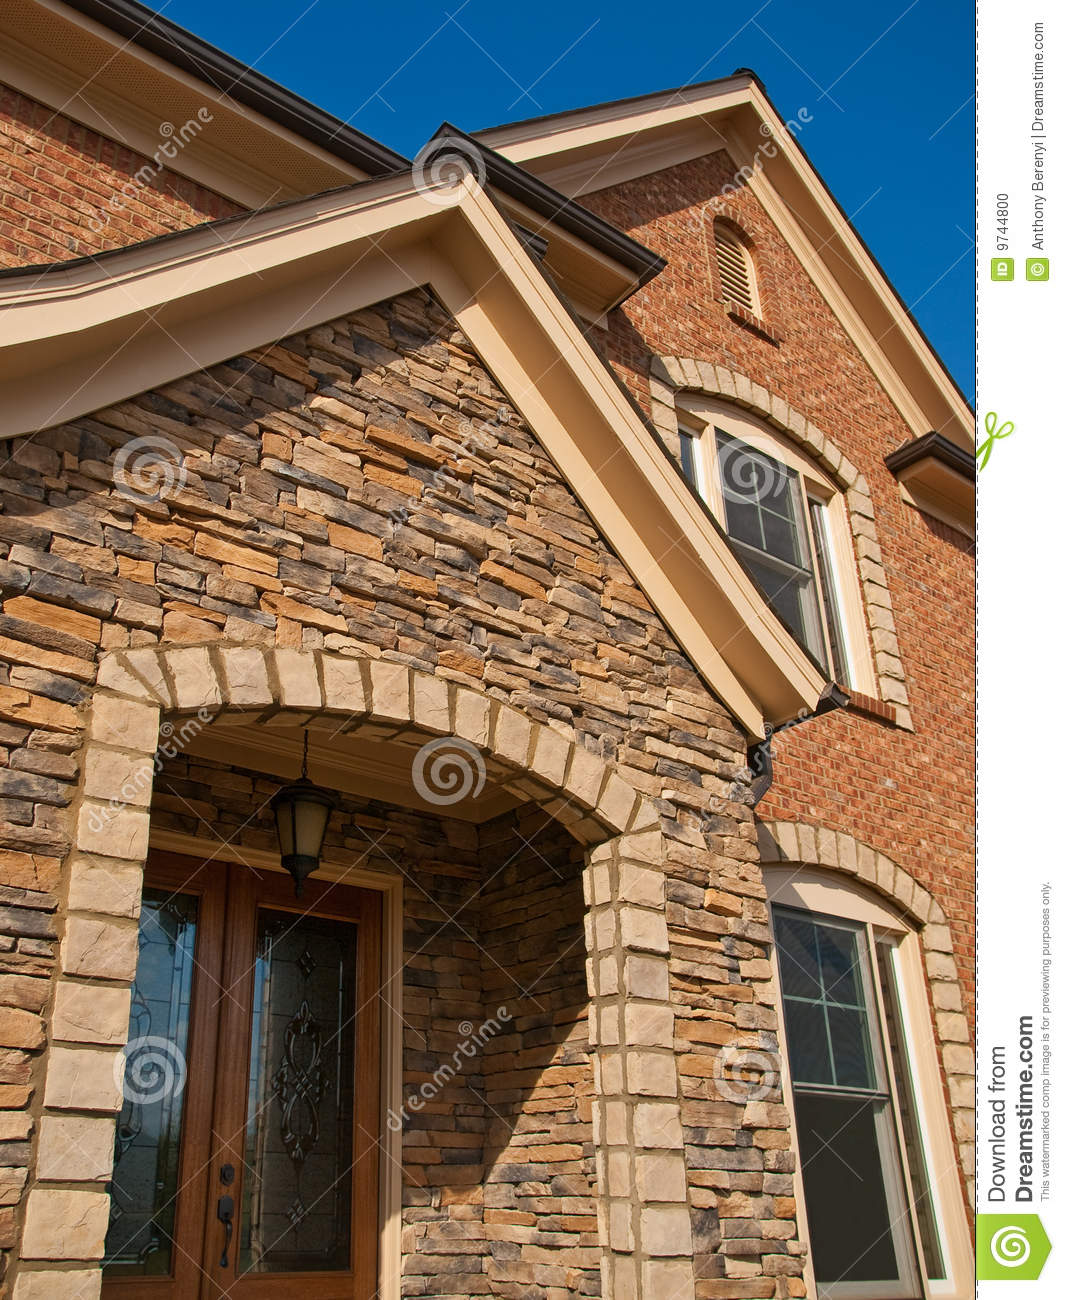 Luxury model home exterior stone arch entrance stock photo for Model home exterior photos